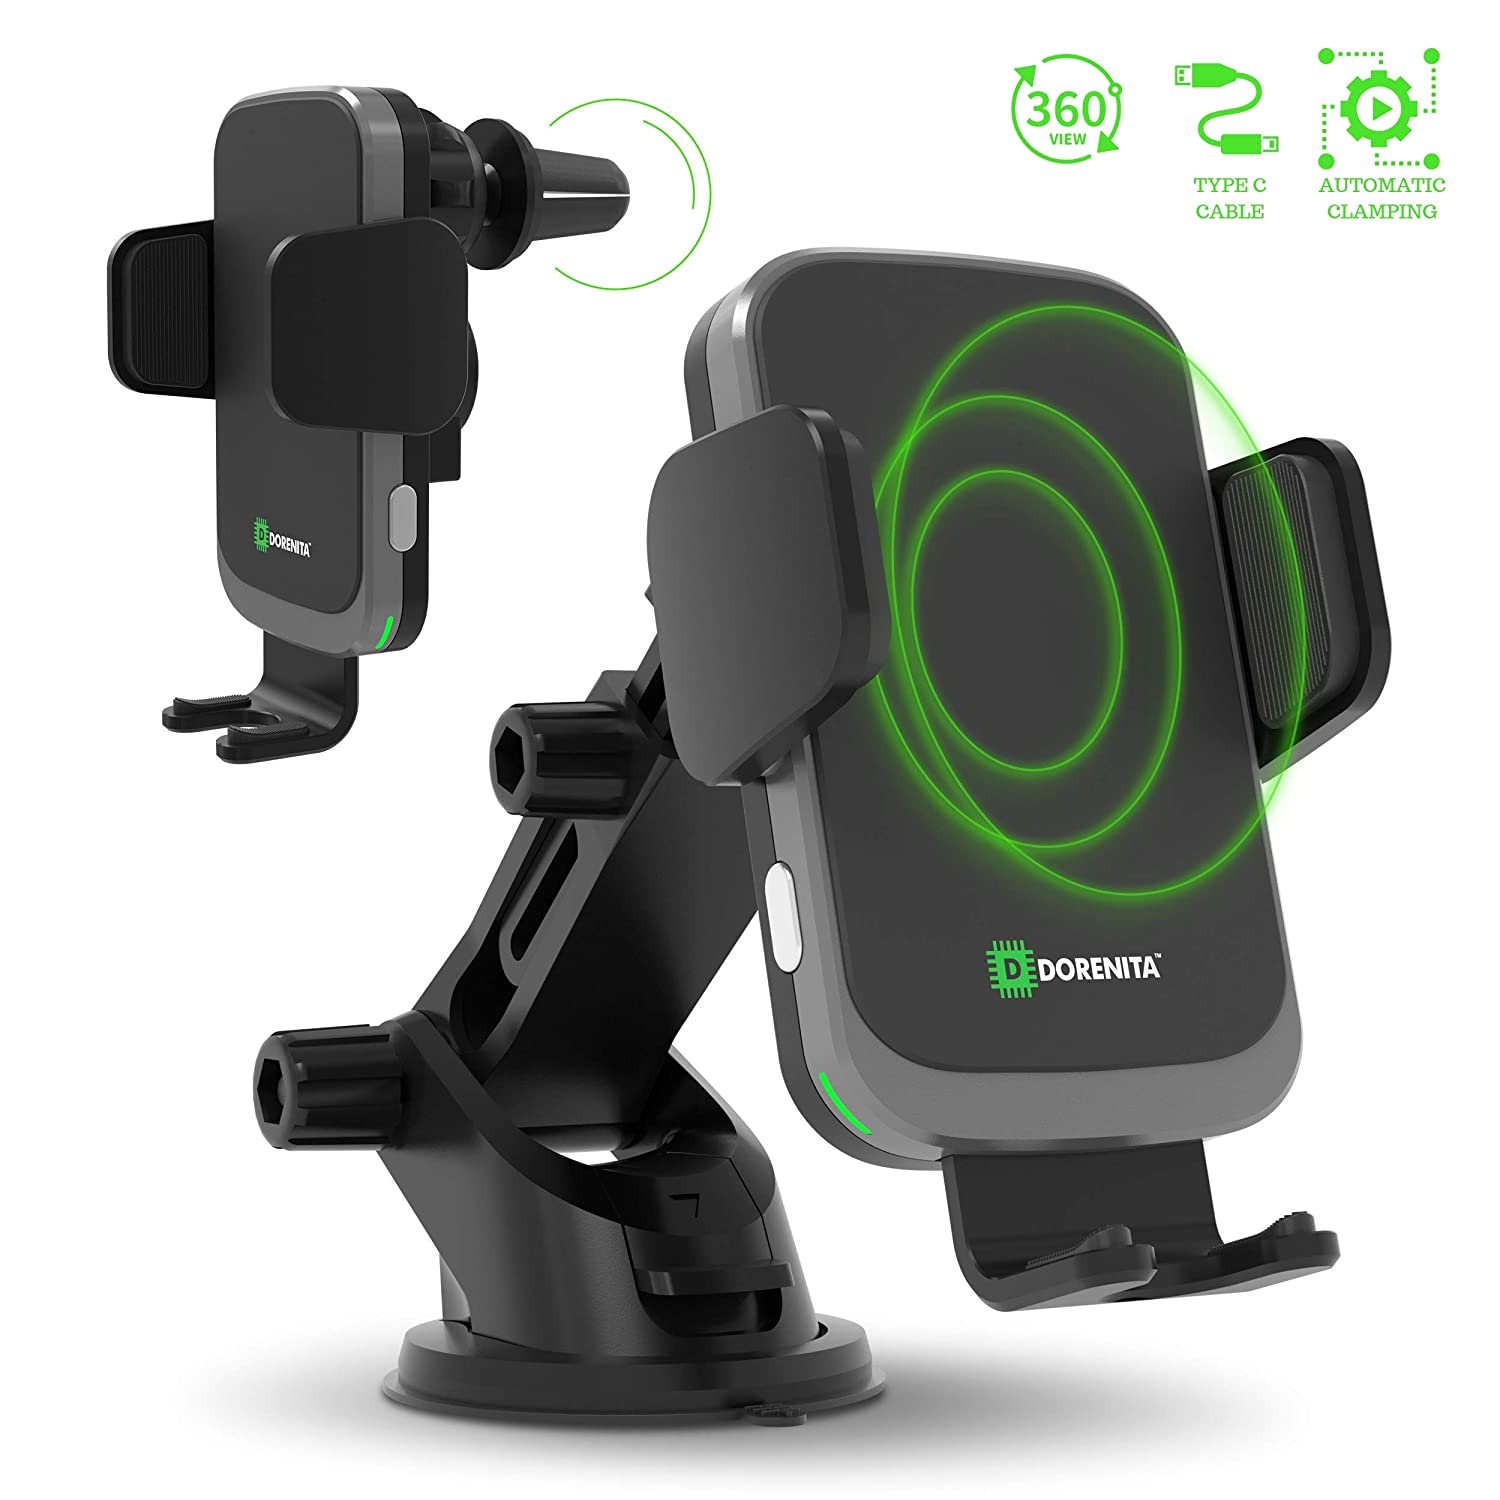 DORENITA Wireless Car Charger Mount: Automatic Clamping and Fast Qi Charging Cell Phone Holder for Car - Compatible with iPhone X, XS Max, Xs, XR, 8, ...